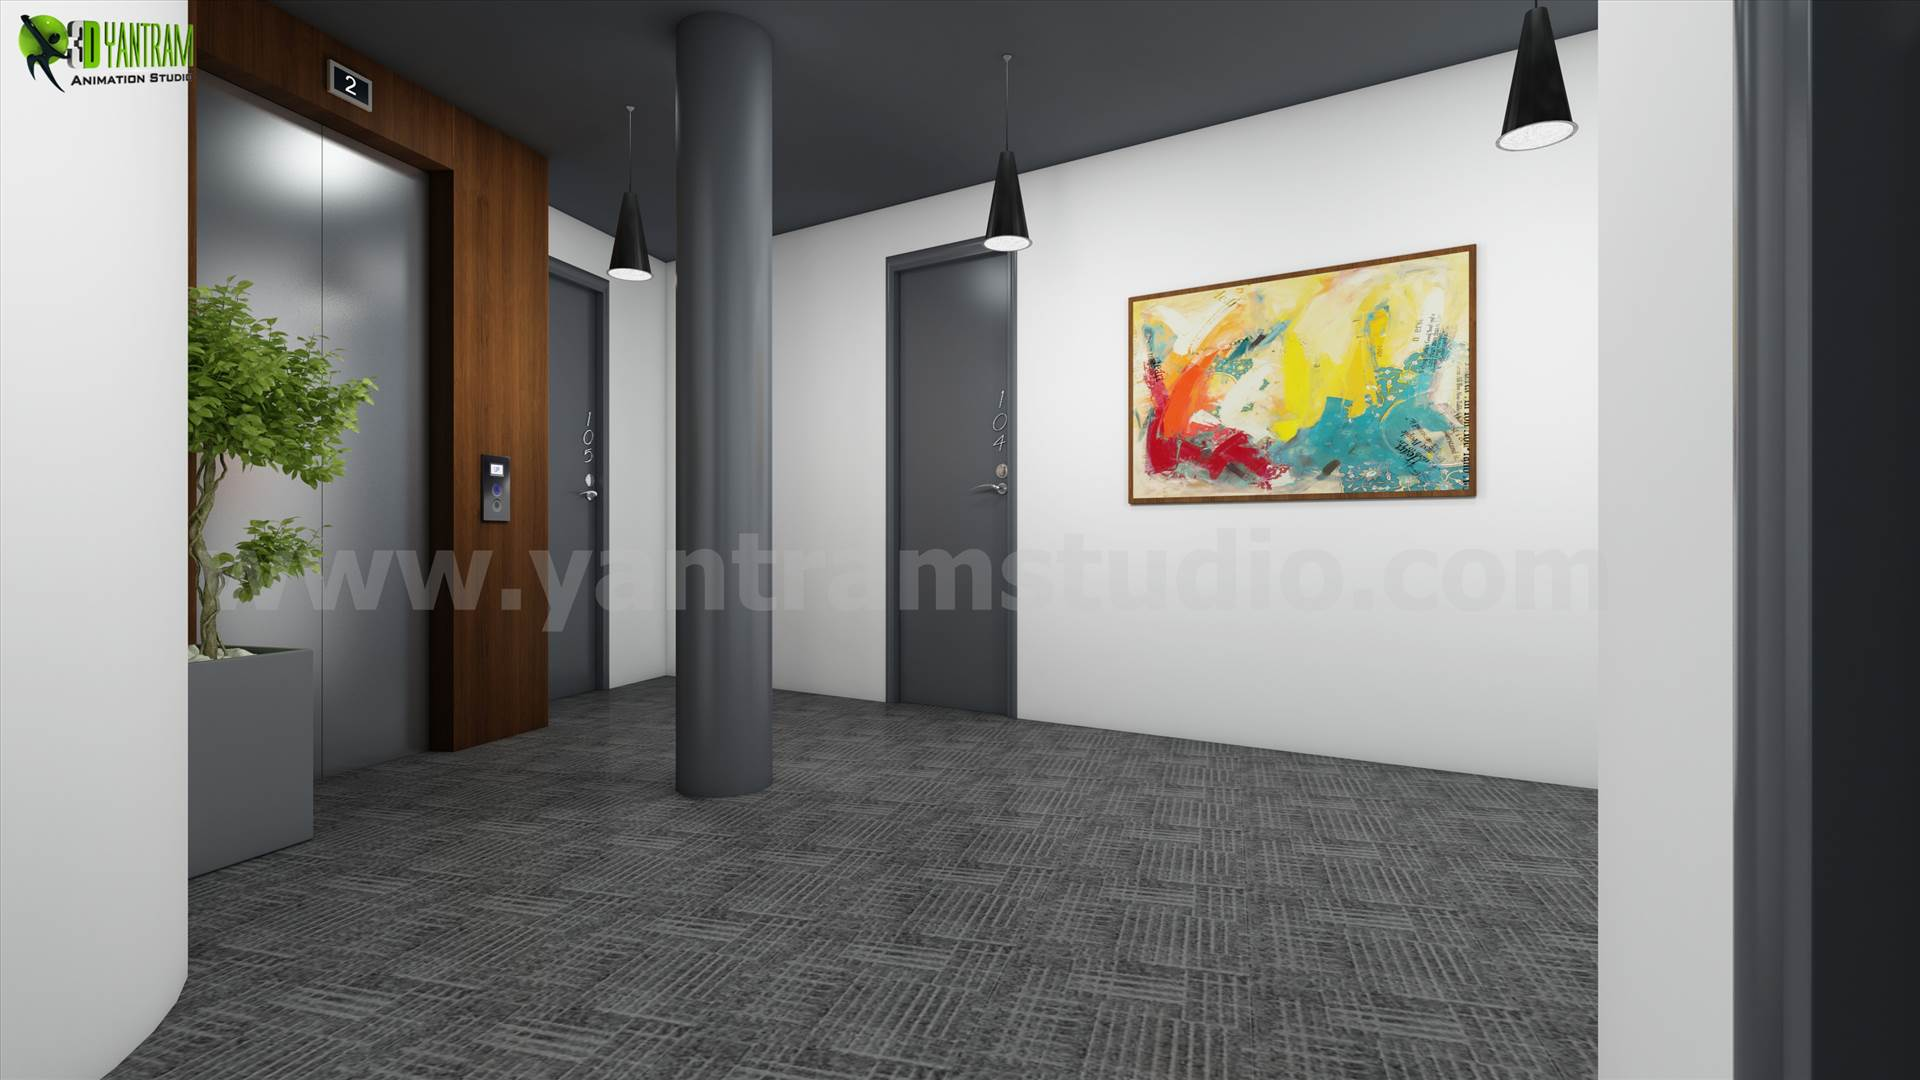 3D Interior Lobby Rendering Concept Idea - architectural visualization company by yantramstudio